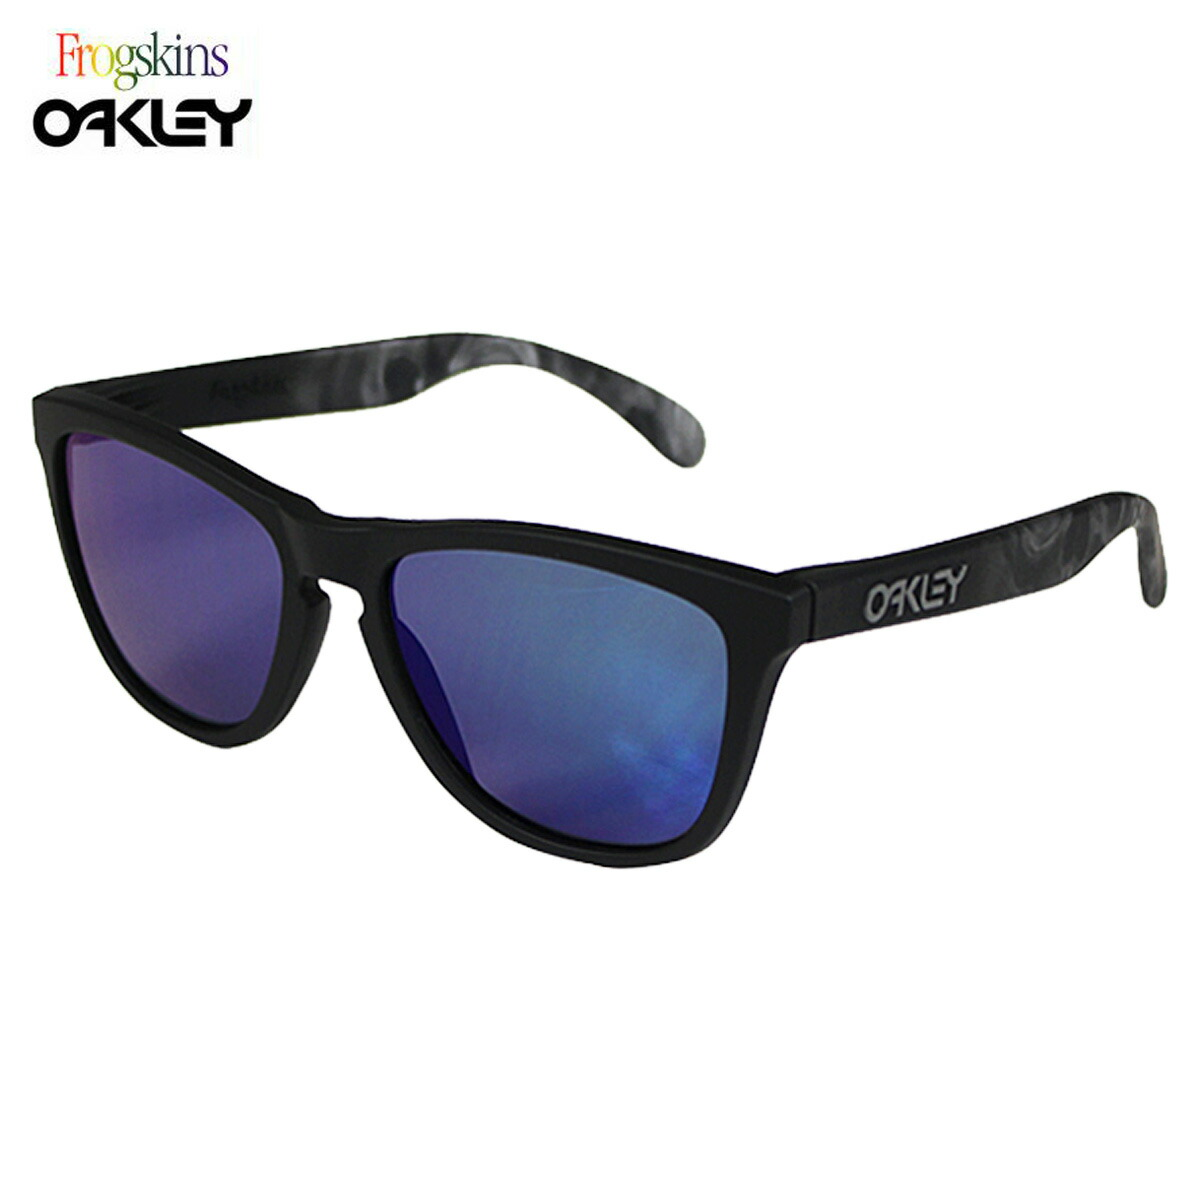 oakley glasses stock  oakley oakley sunglasses frogskins frog skin mens womens glasses 24 398 skull x limited edition soft touch skulls unisex blue iridium